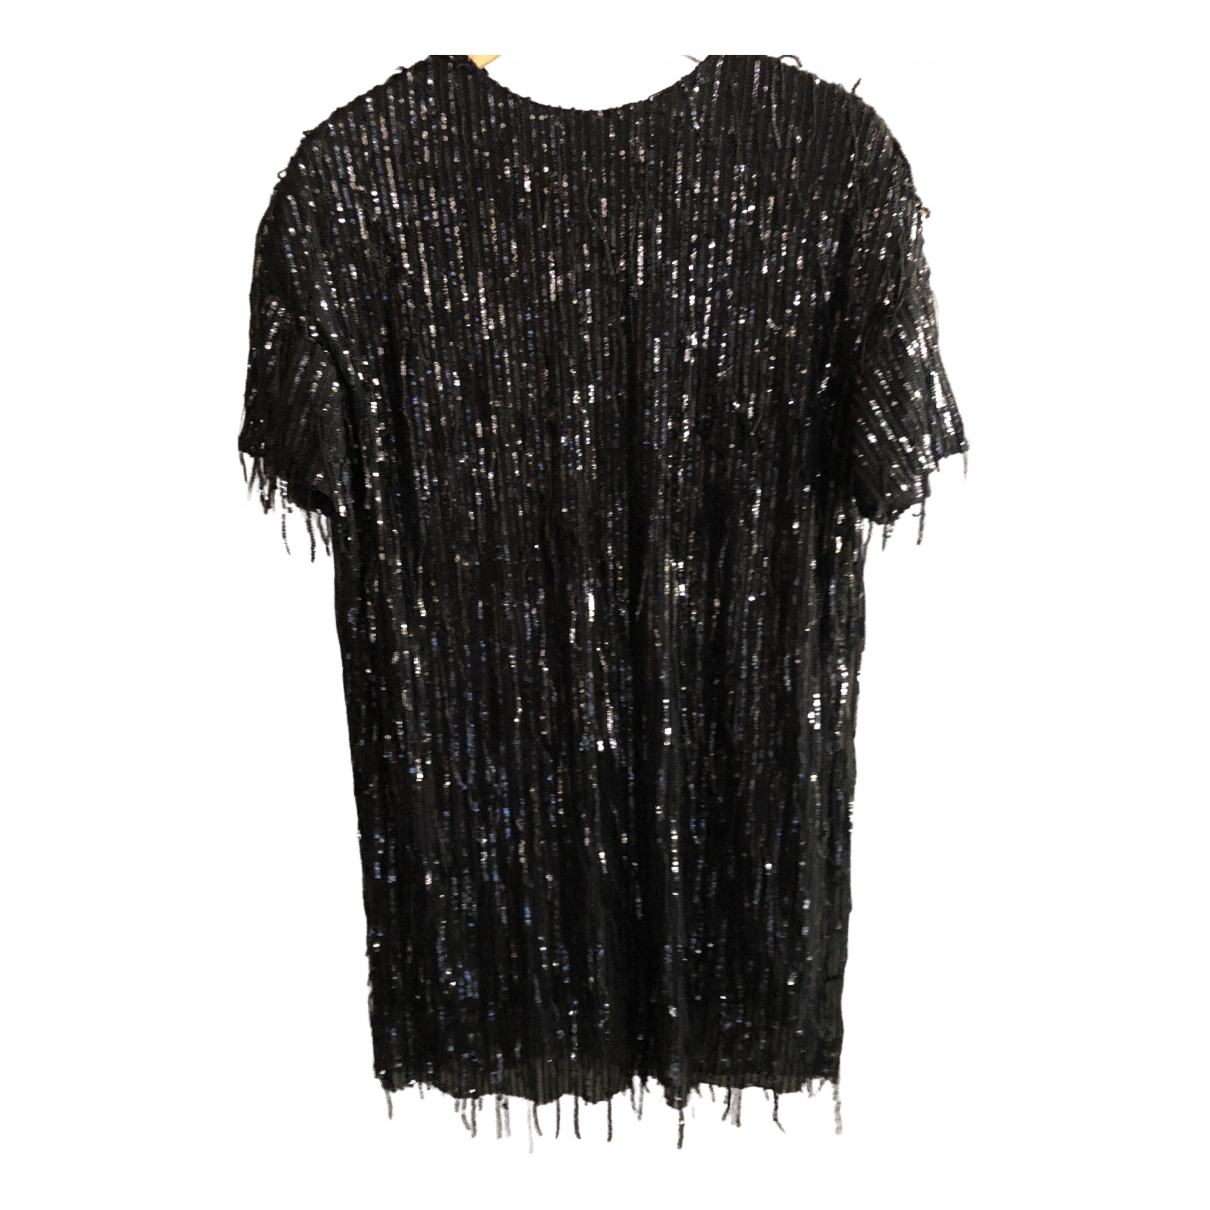 Zara \N Black Glitter dress for Women XS International